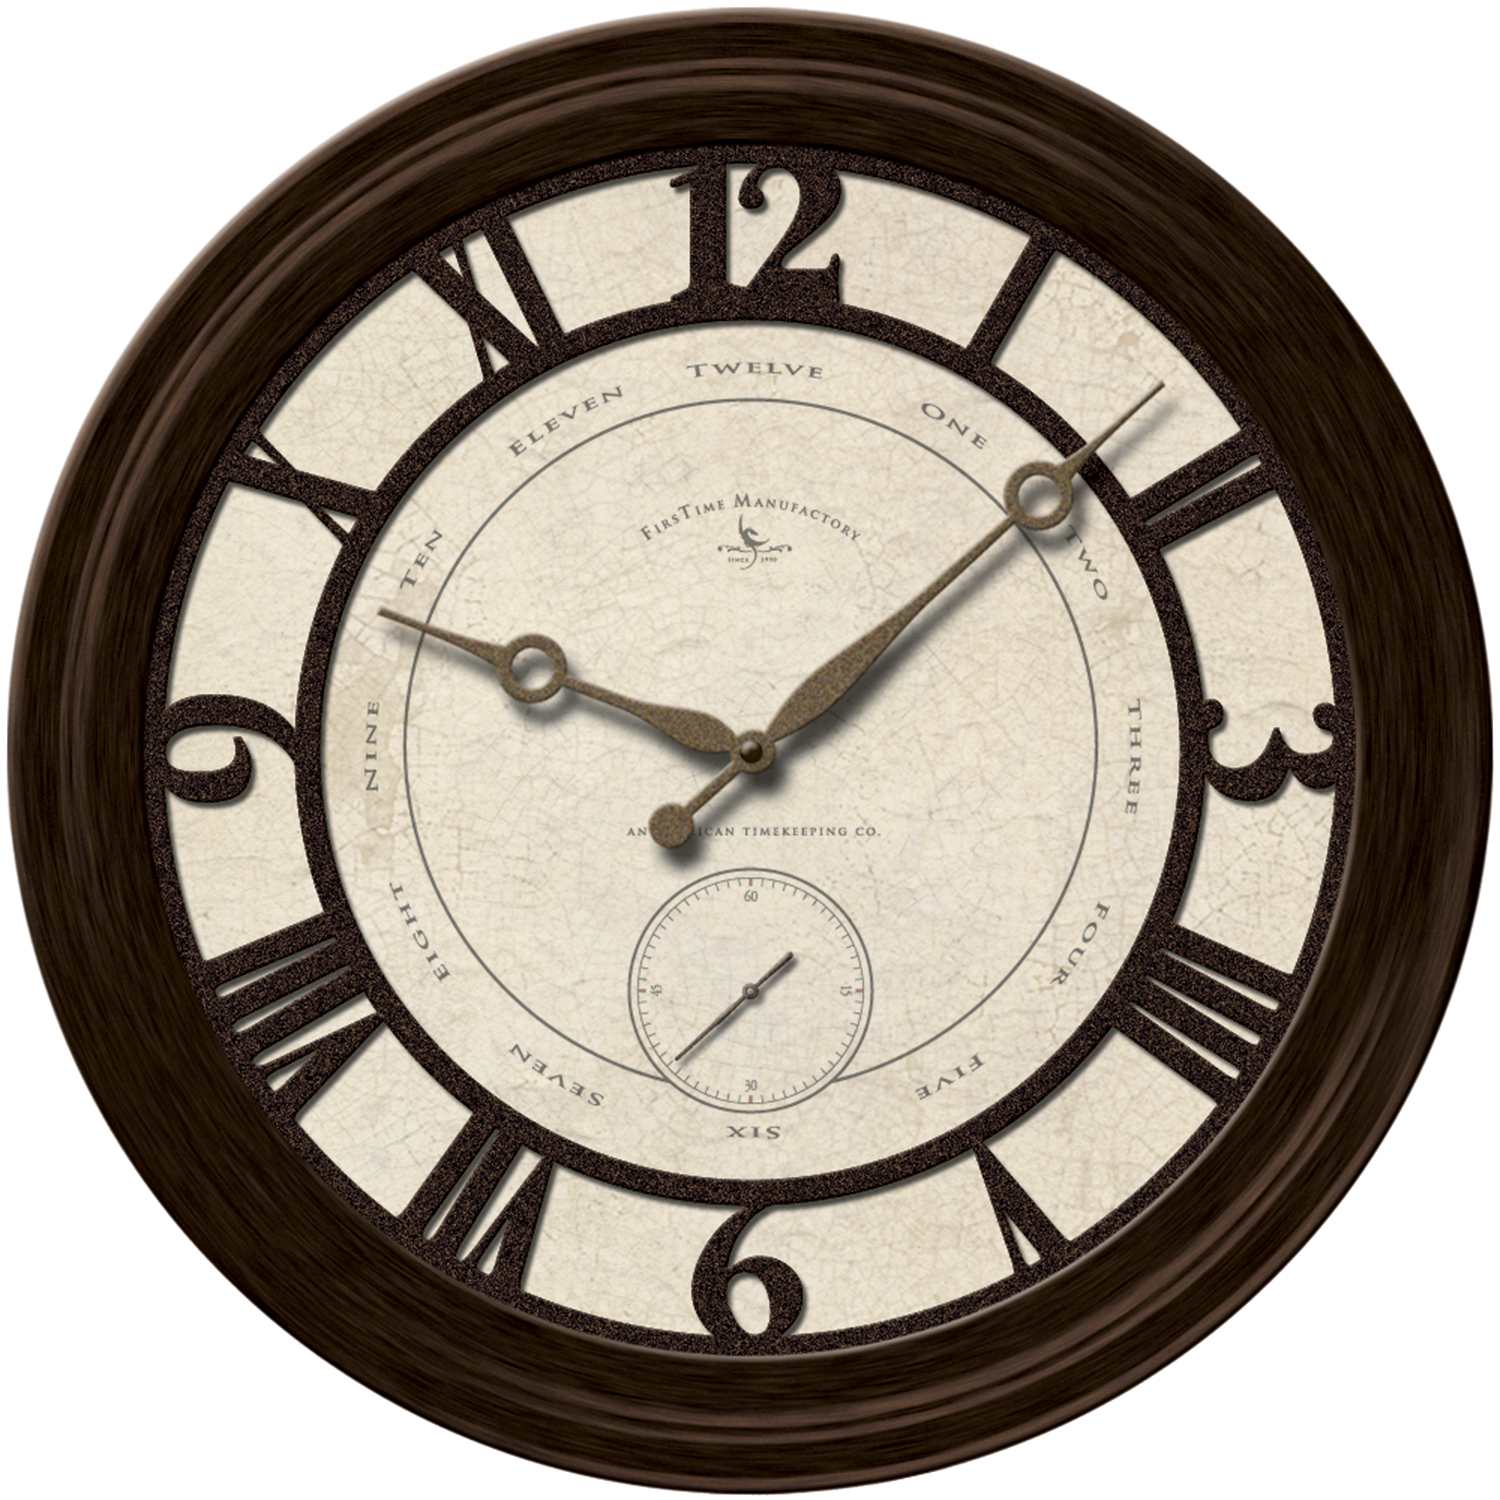 Statement Wall Clocks Firstime Big Gig Wall Clock